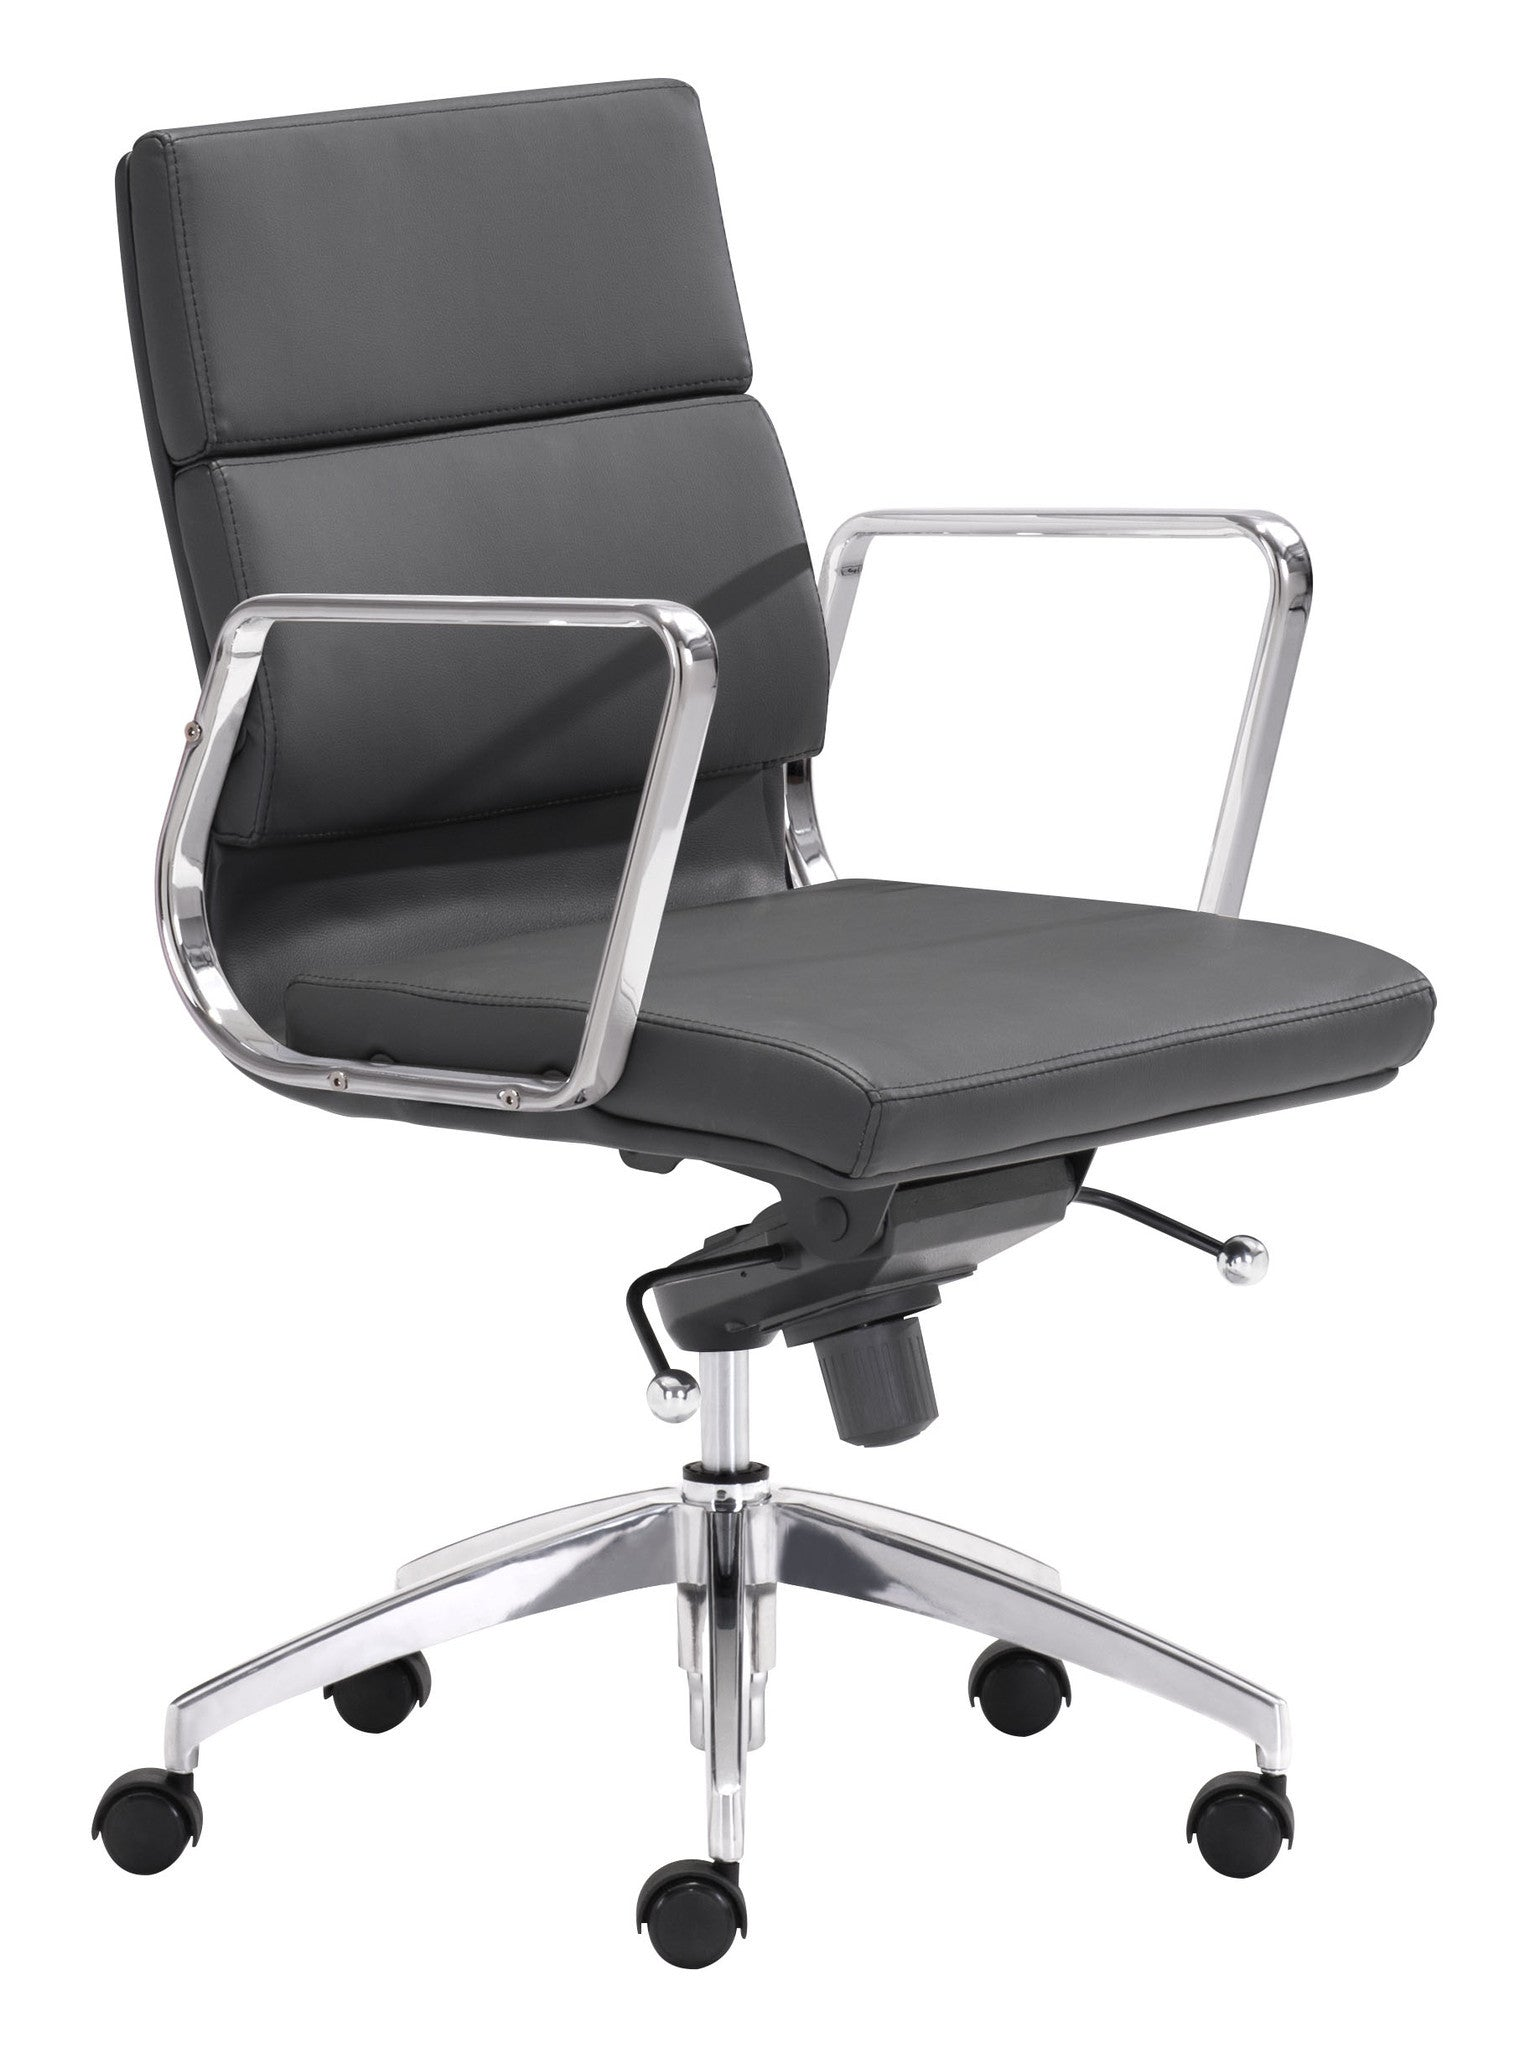 engineer low back office chair in black leatherette with chrome frame